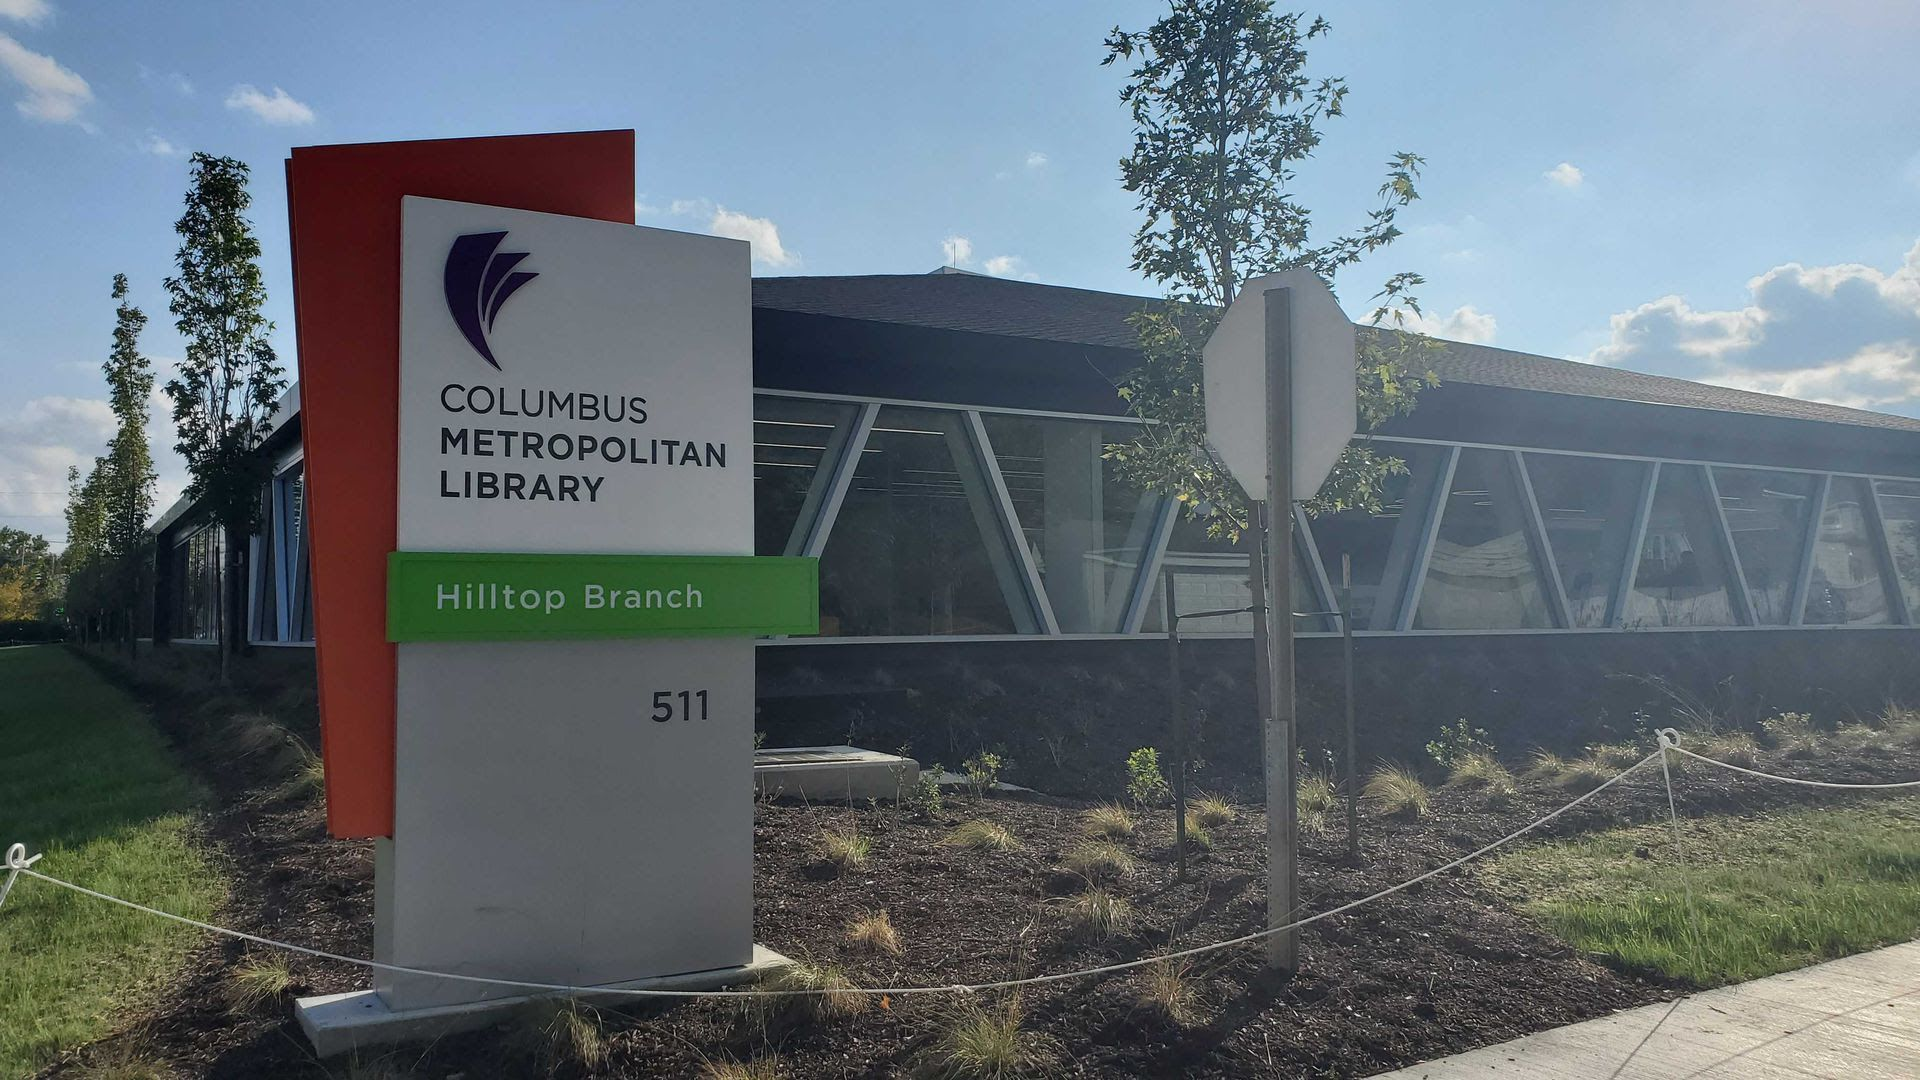 The new Hilltop Branch of the Columbus Public library system.